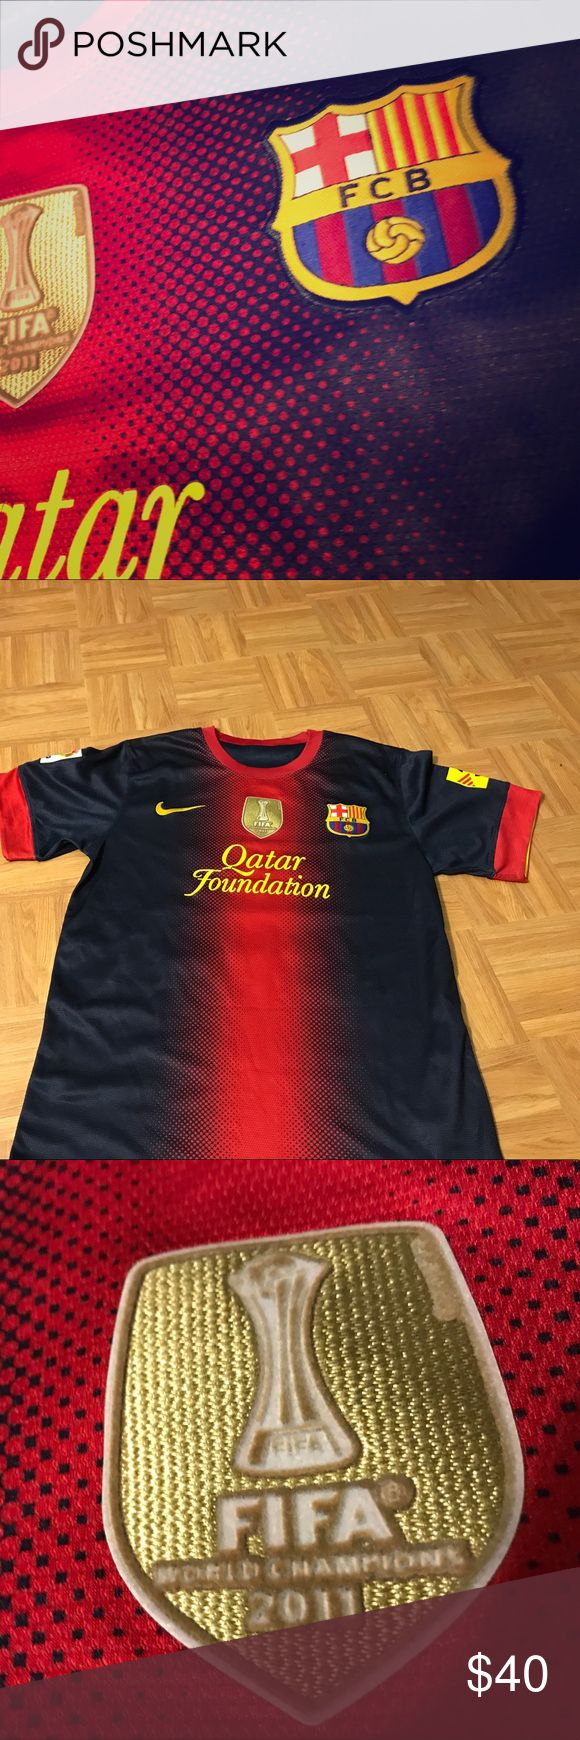 Barcelona jersey Barcelona jersey number 1o Messi Nike Other